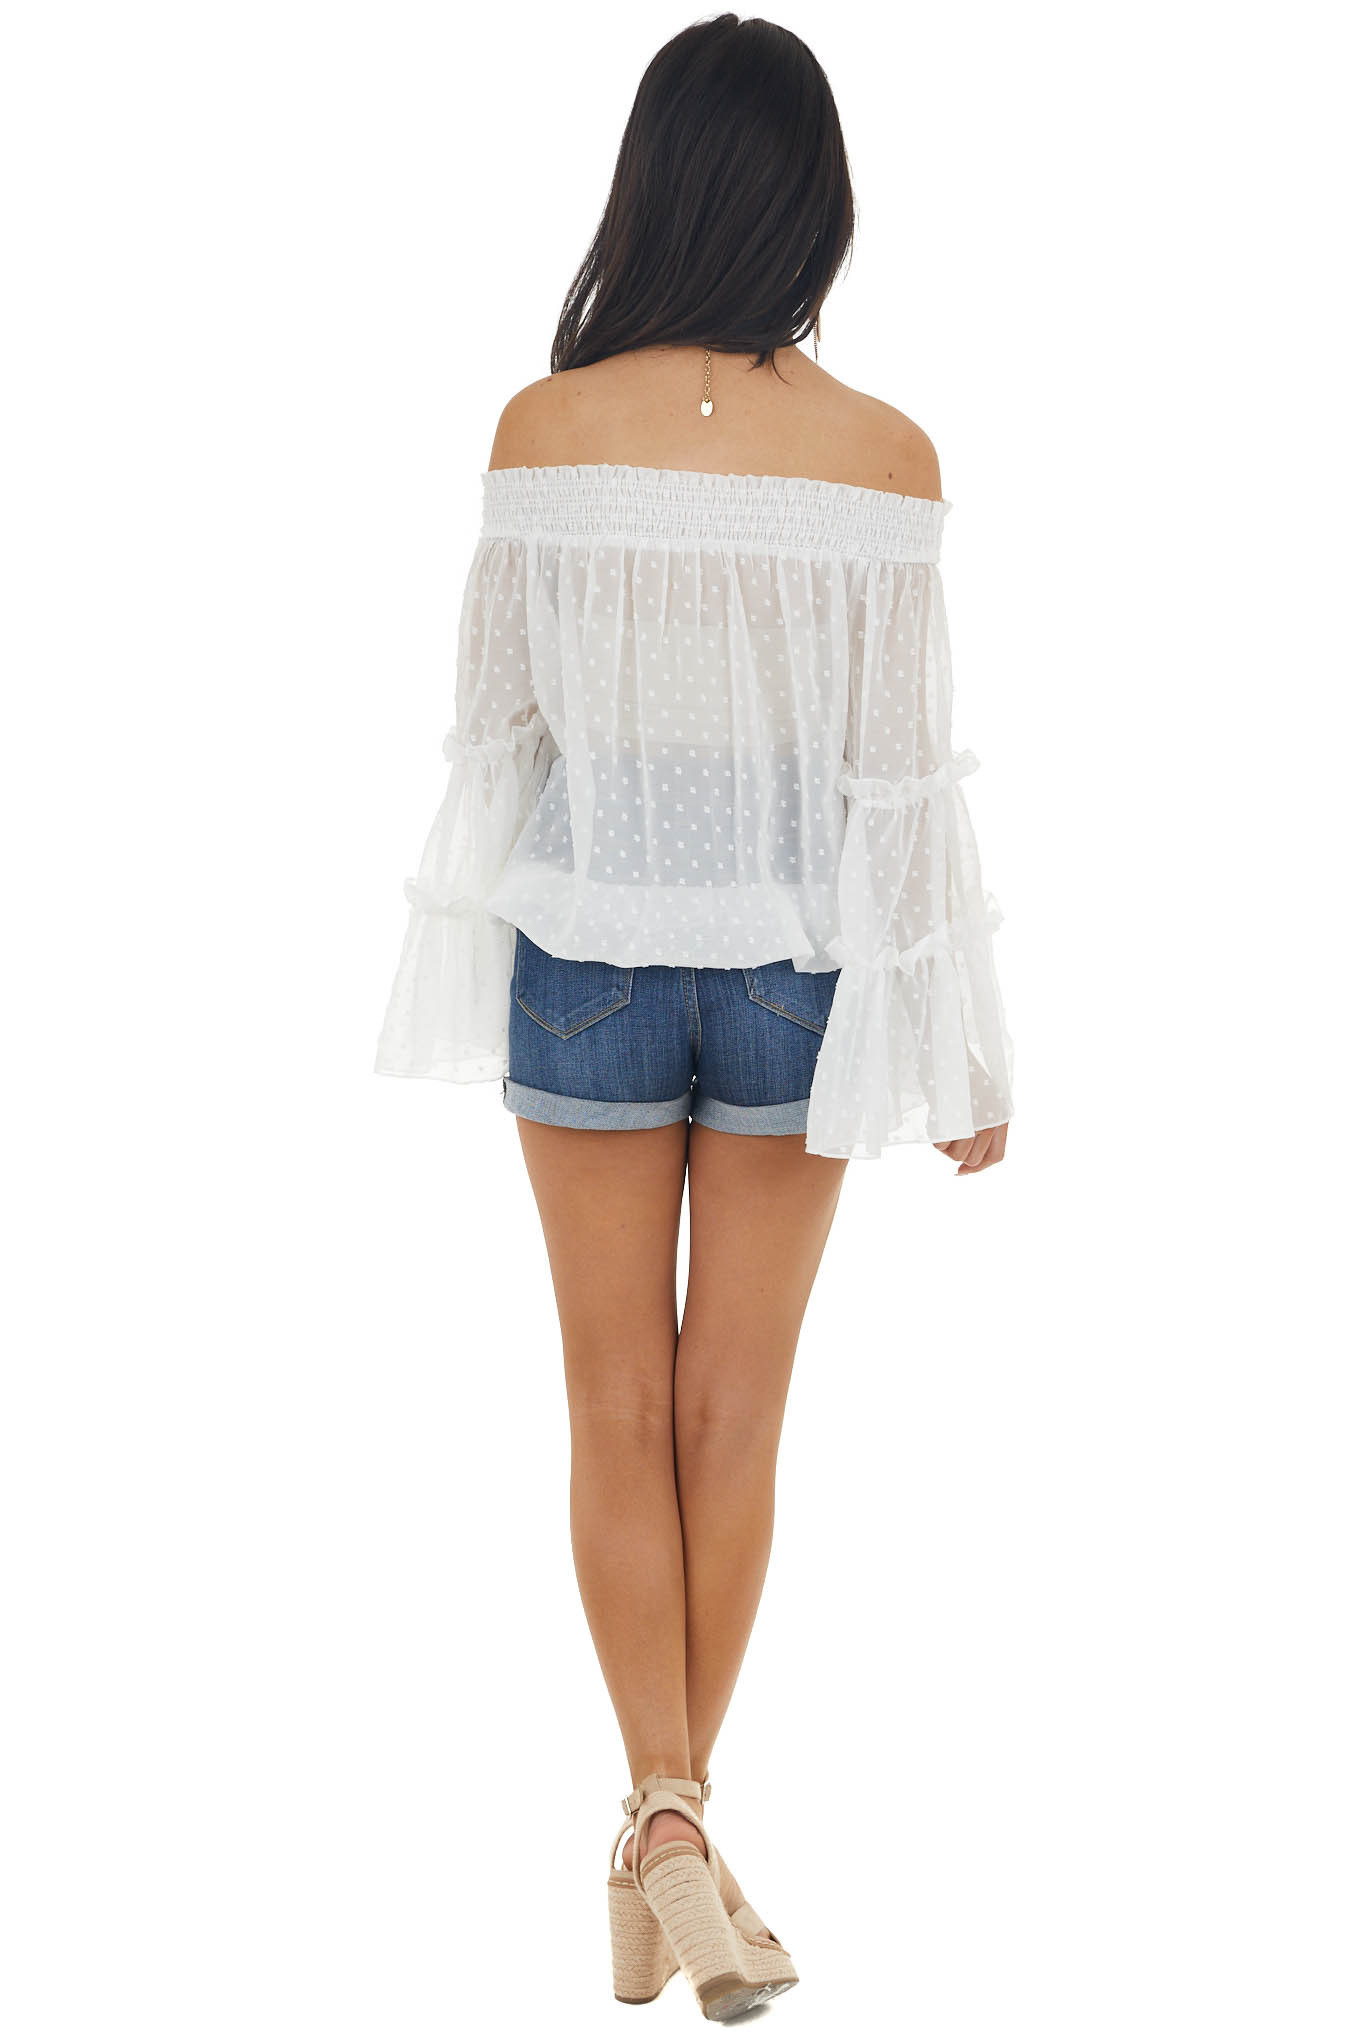 Ivory Off Shoulder Long Flare Sleeve Top with Swiss Dots